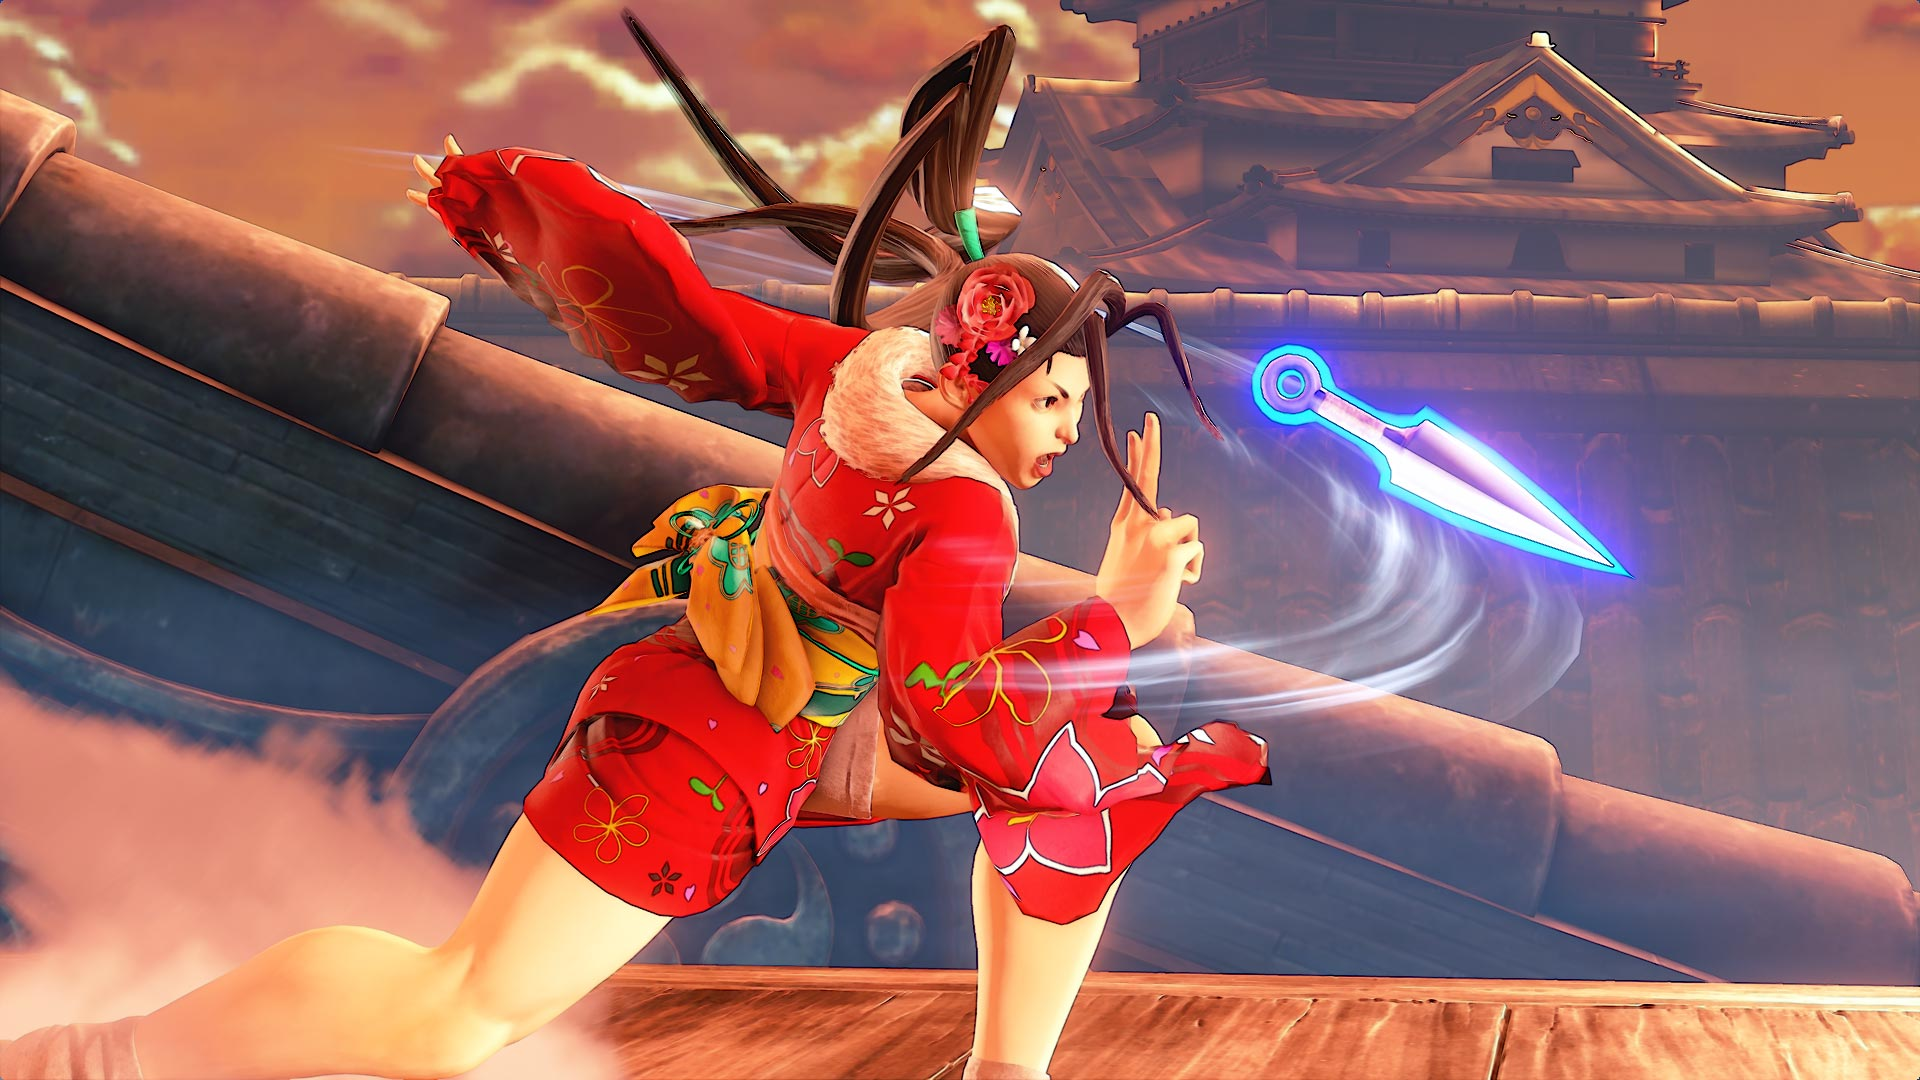 30th Anniversary costumes are coming to Street Fighter V on August 29